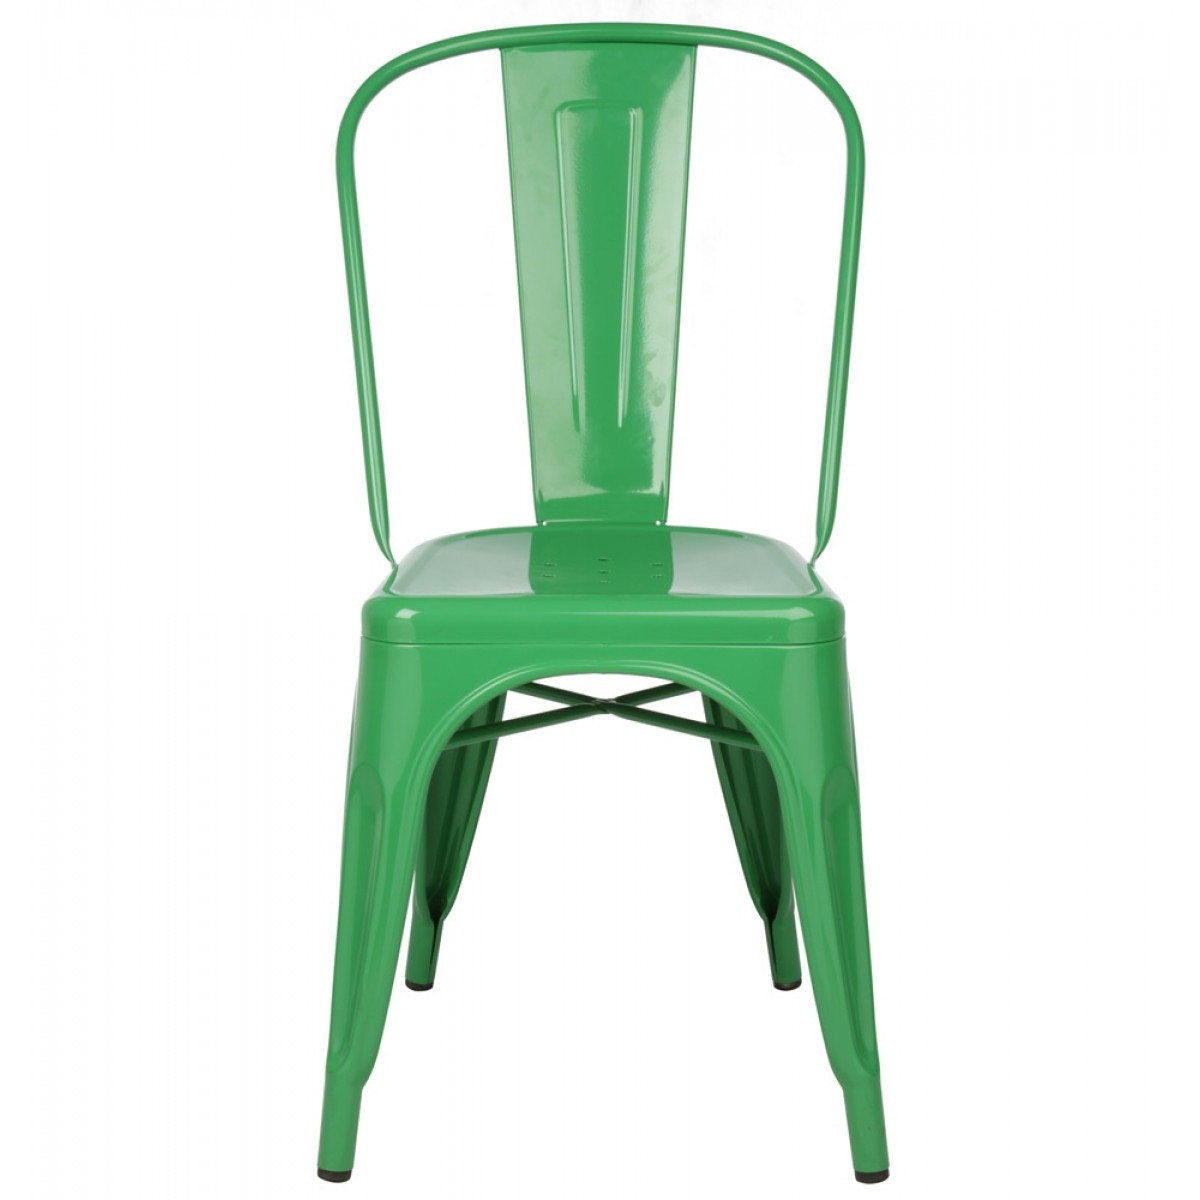 Modern Industrial Chair Tolix Style Metal Industrial Loft Designer Green Cafe Chair